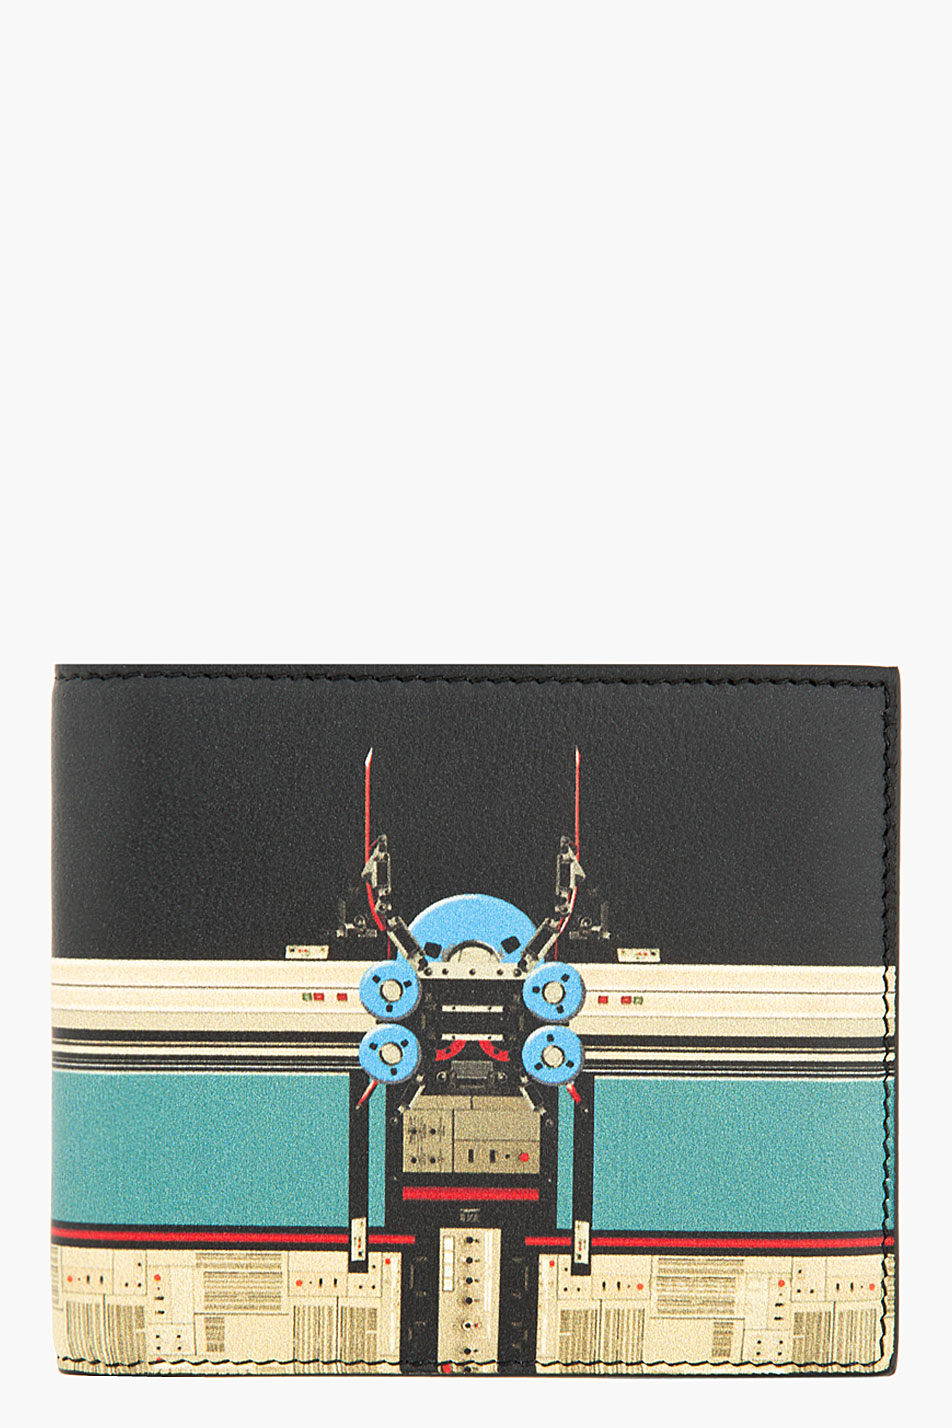 Givenchy black and teal lambskin robot graphic bifold wallet